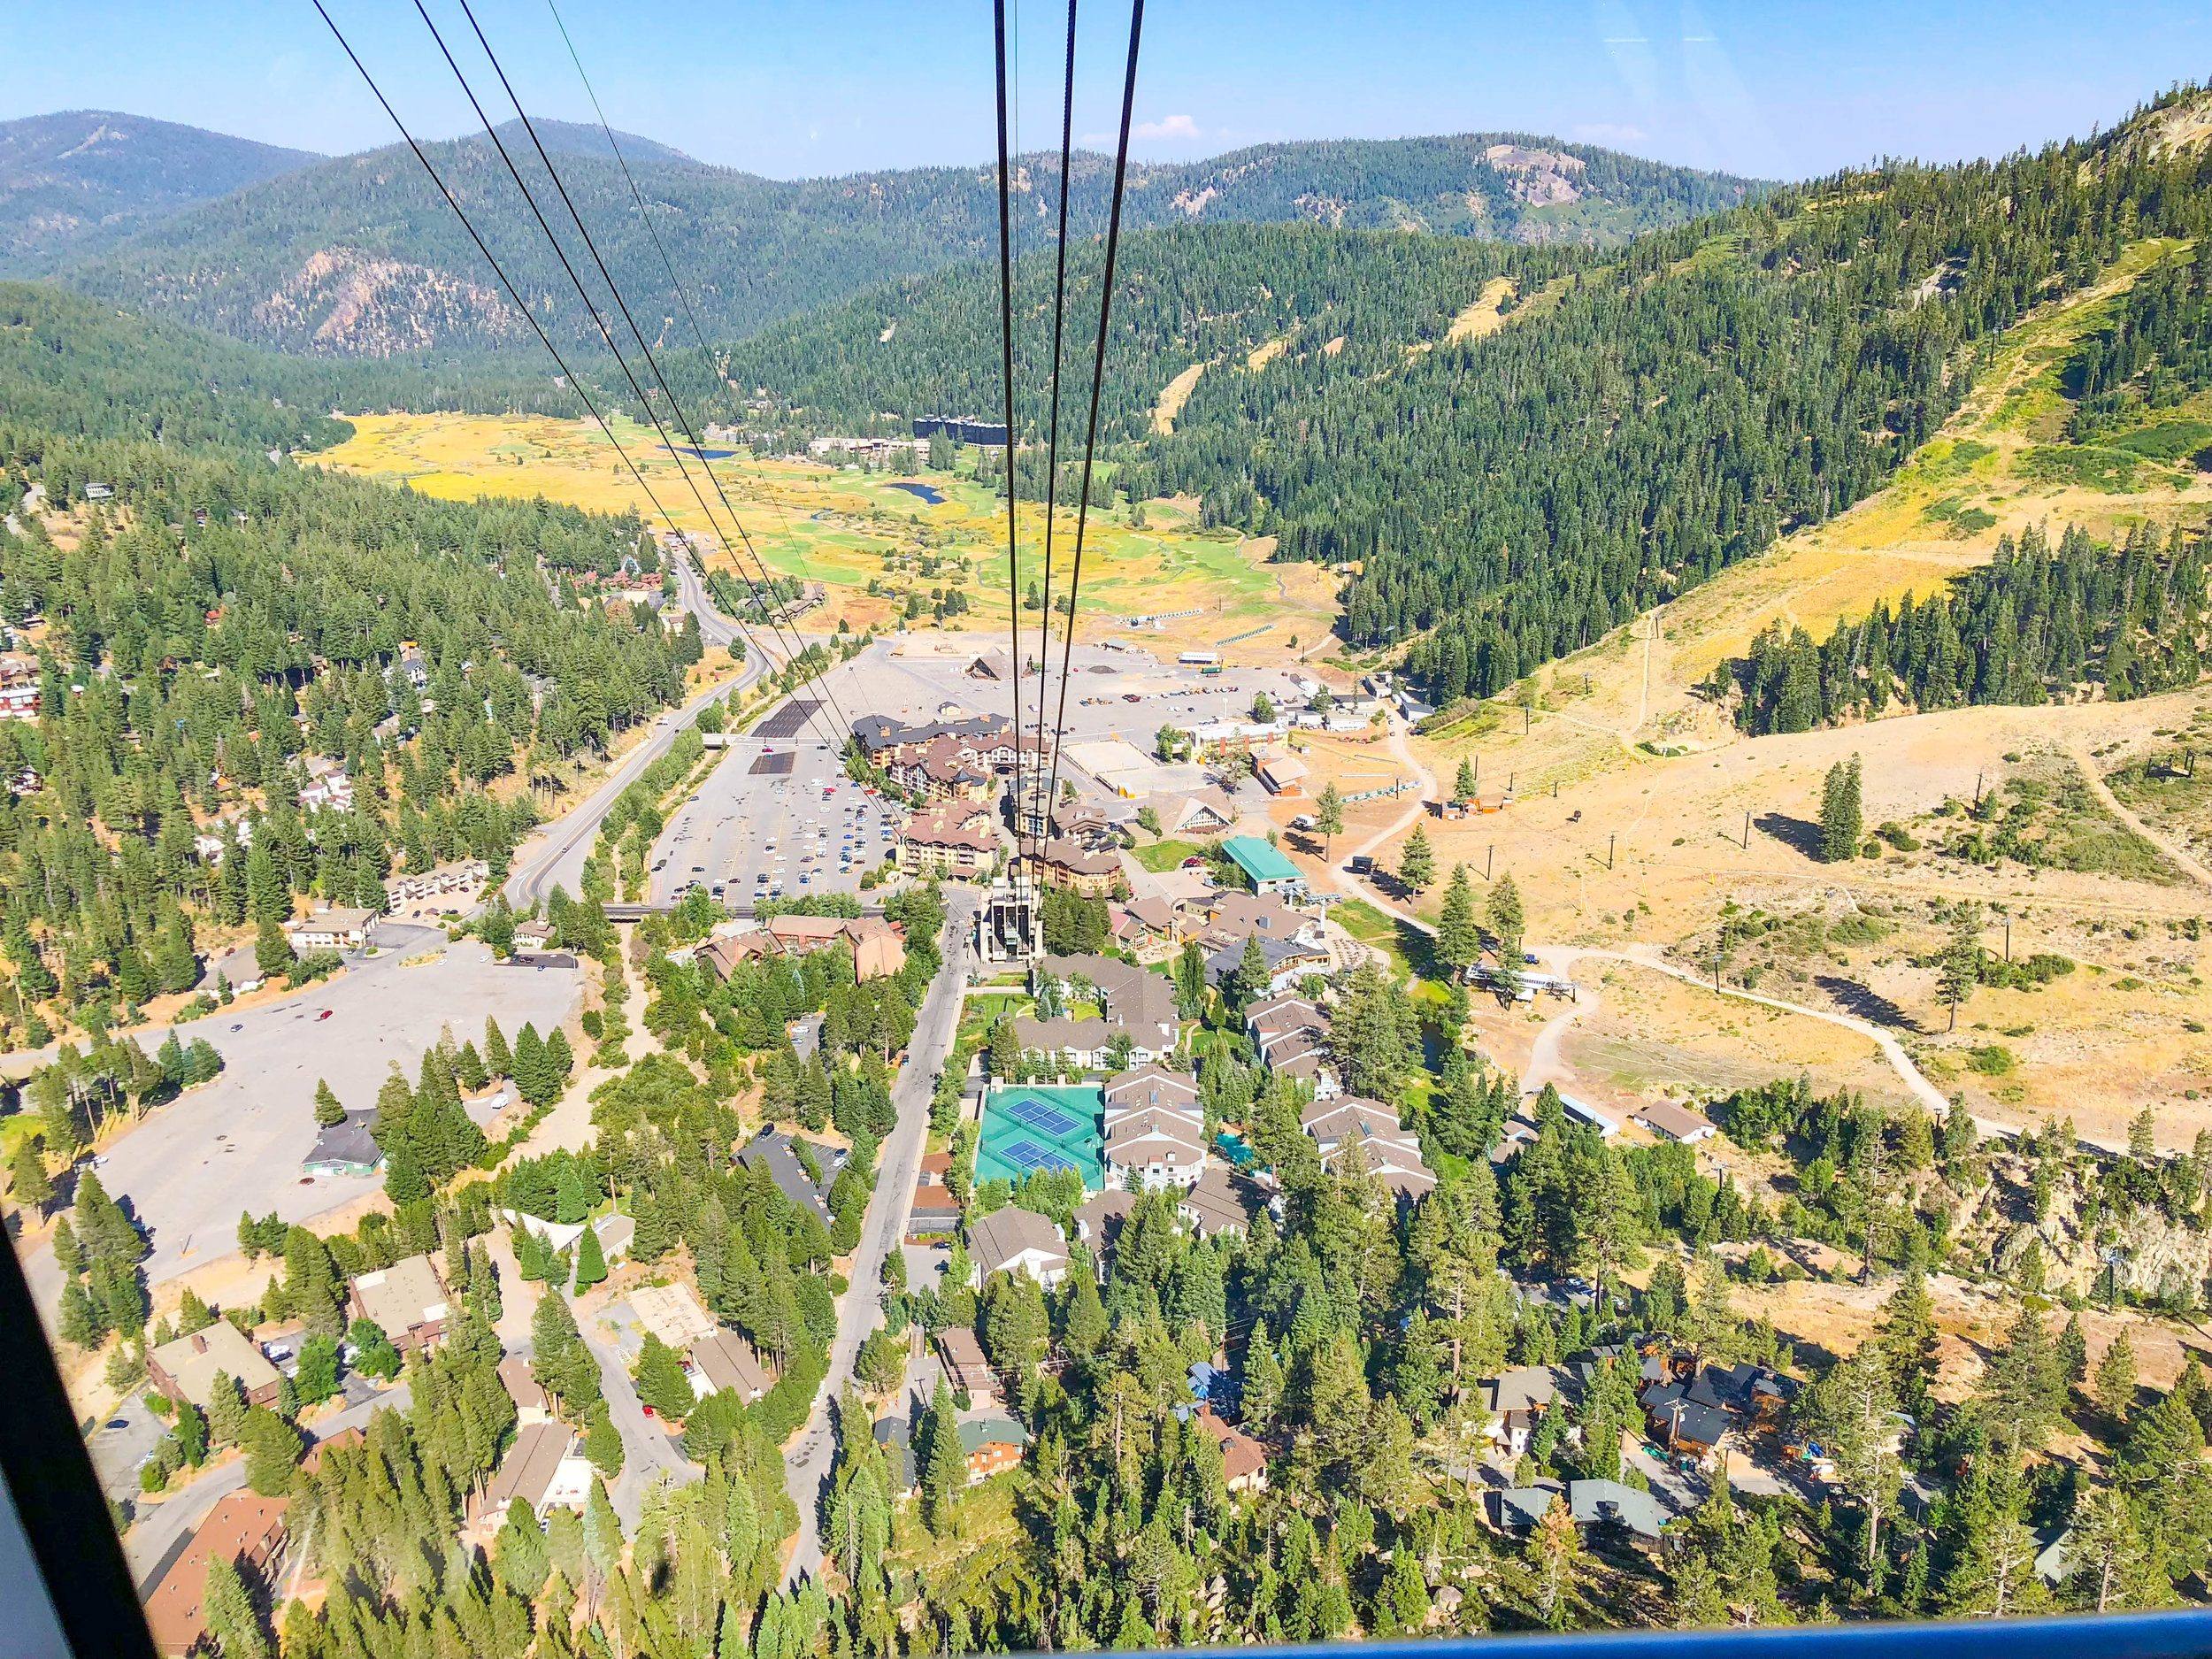 Squaw Valley Aerial Tram to High Camp